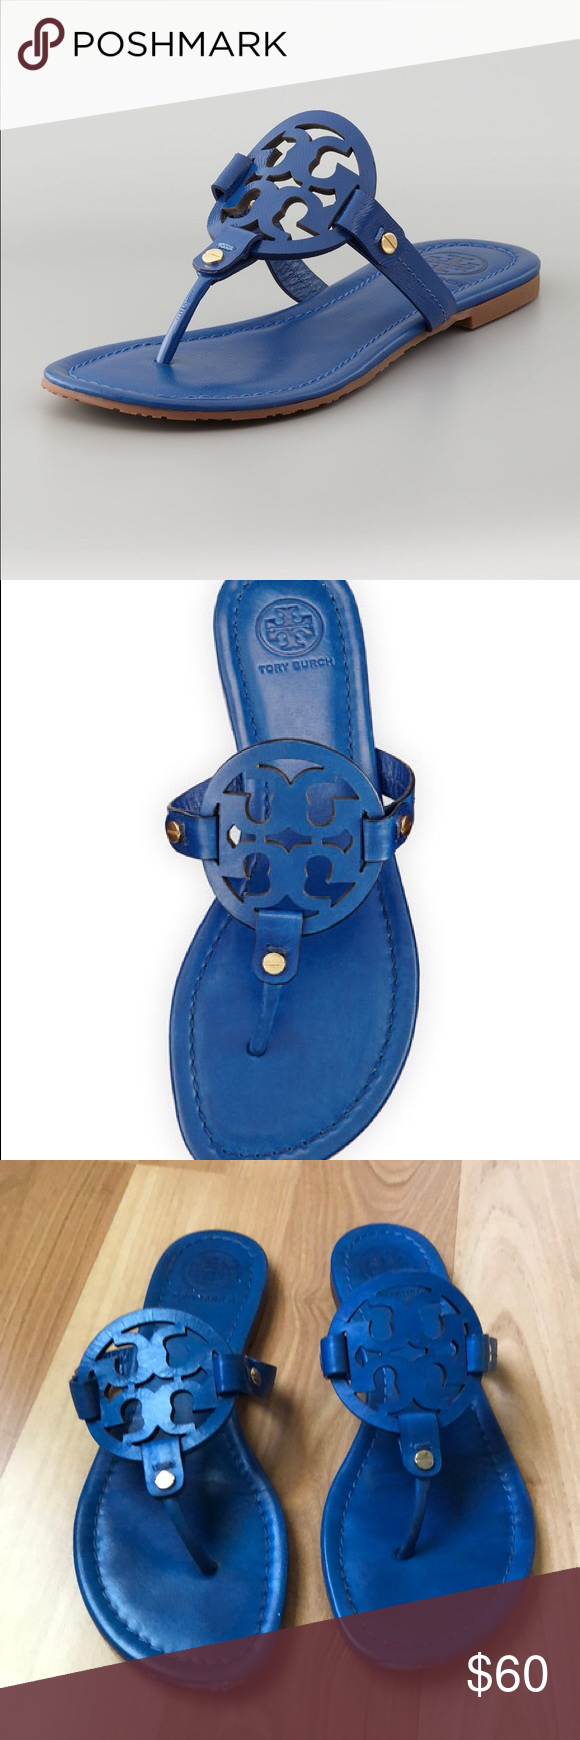 87bf3eb7aa2ad4 Tory Burch Miller Sandals Tory Burch Miller Sandals Blue Size 7.5 Please  see pictures for signs